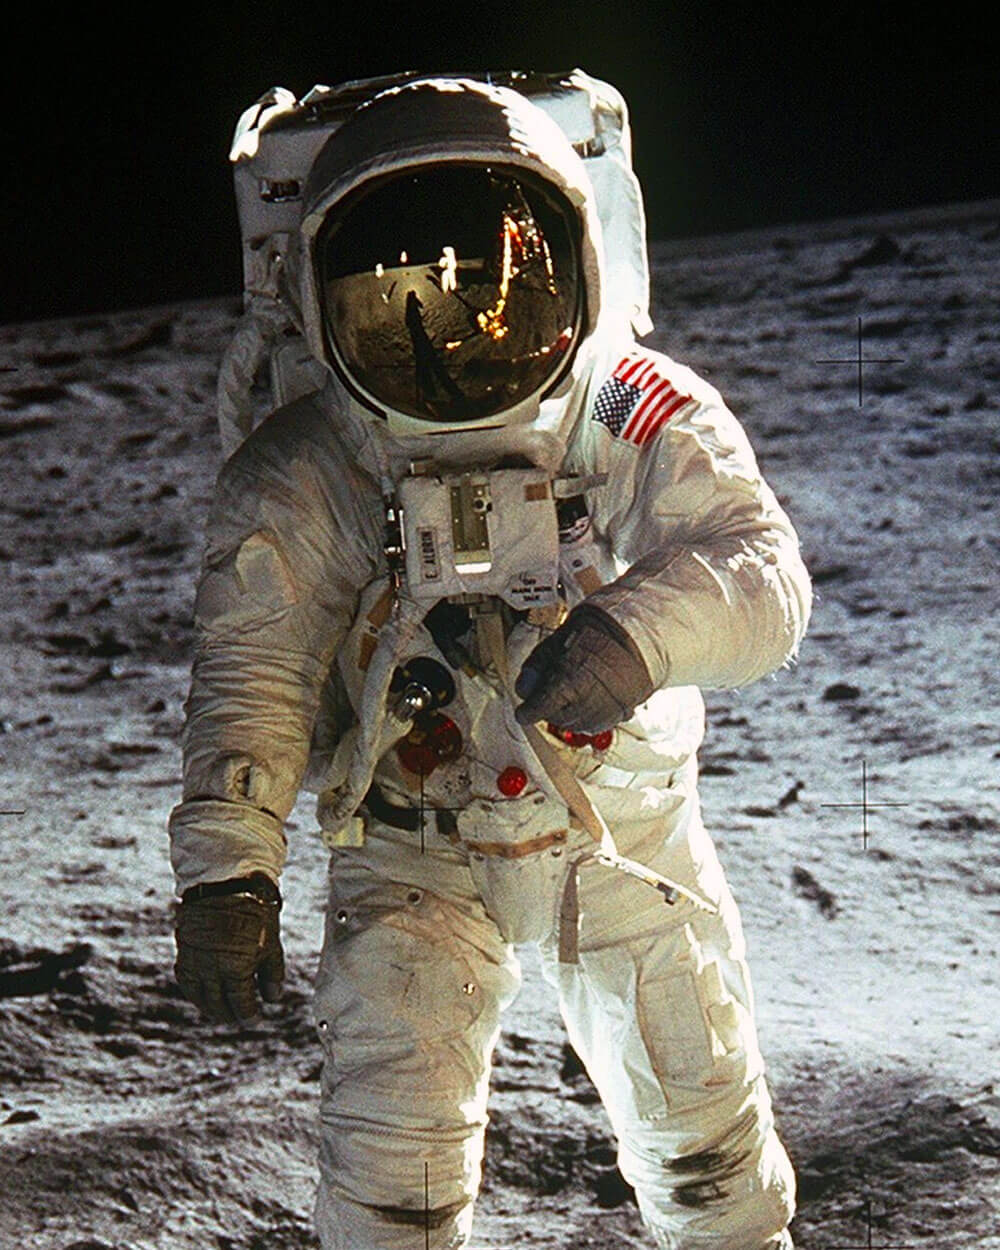 Smell In Space Station - an astronaut walking on the moon